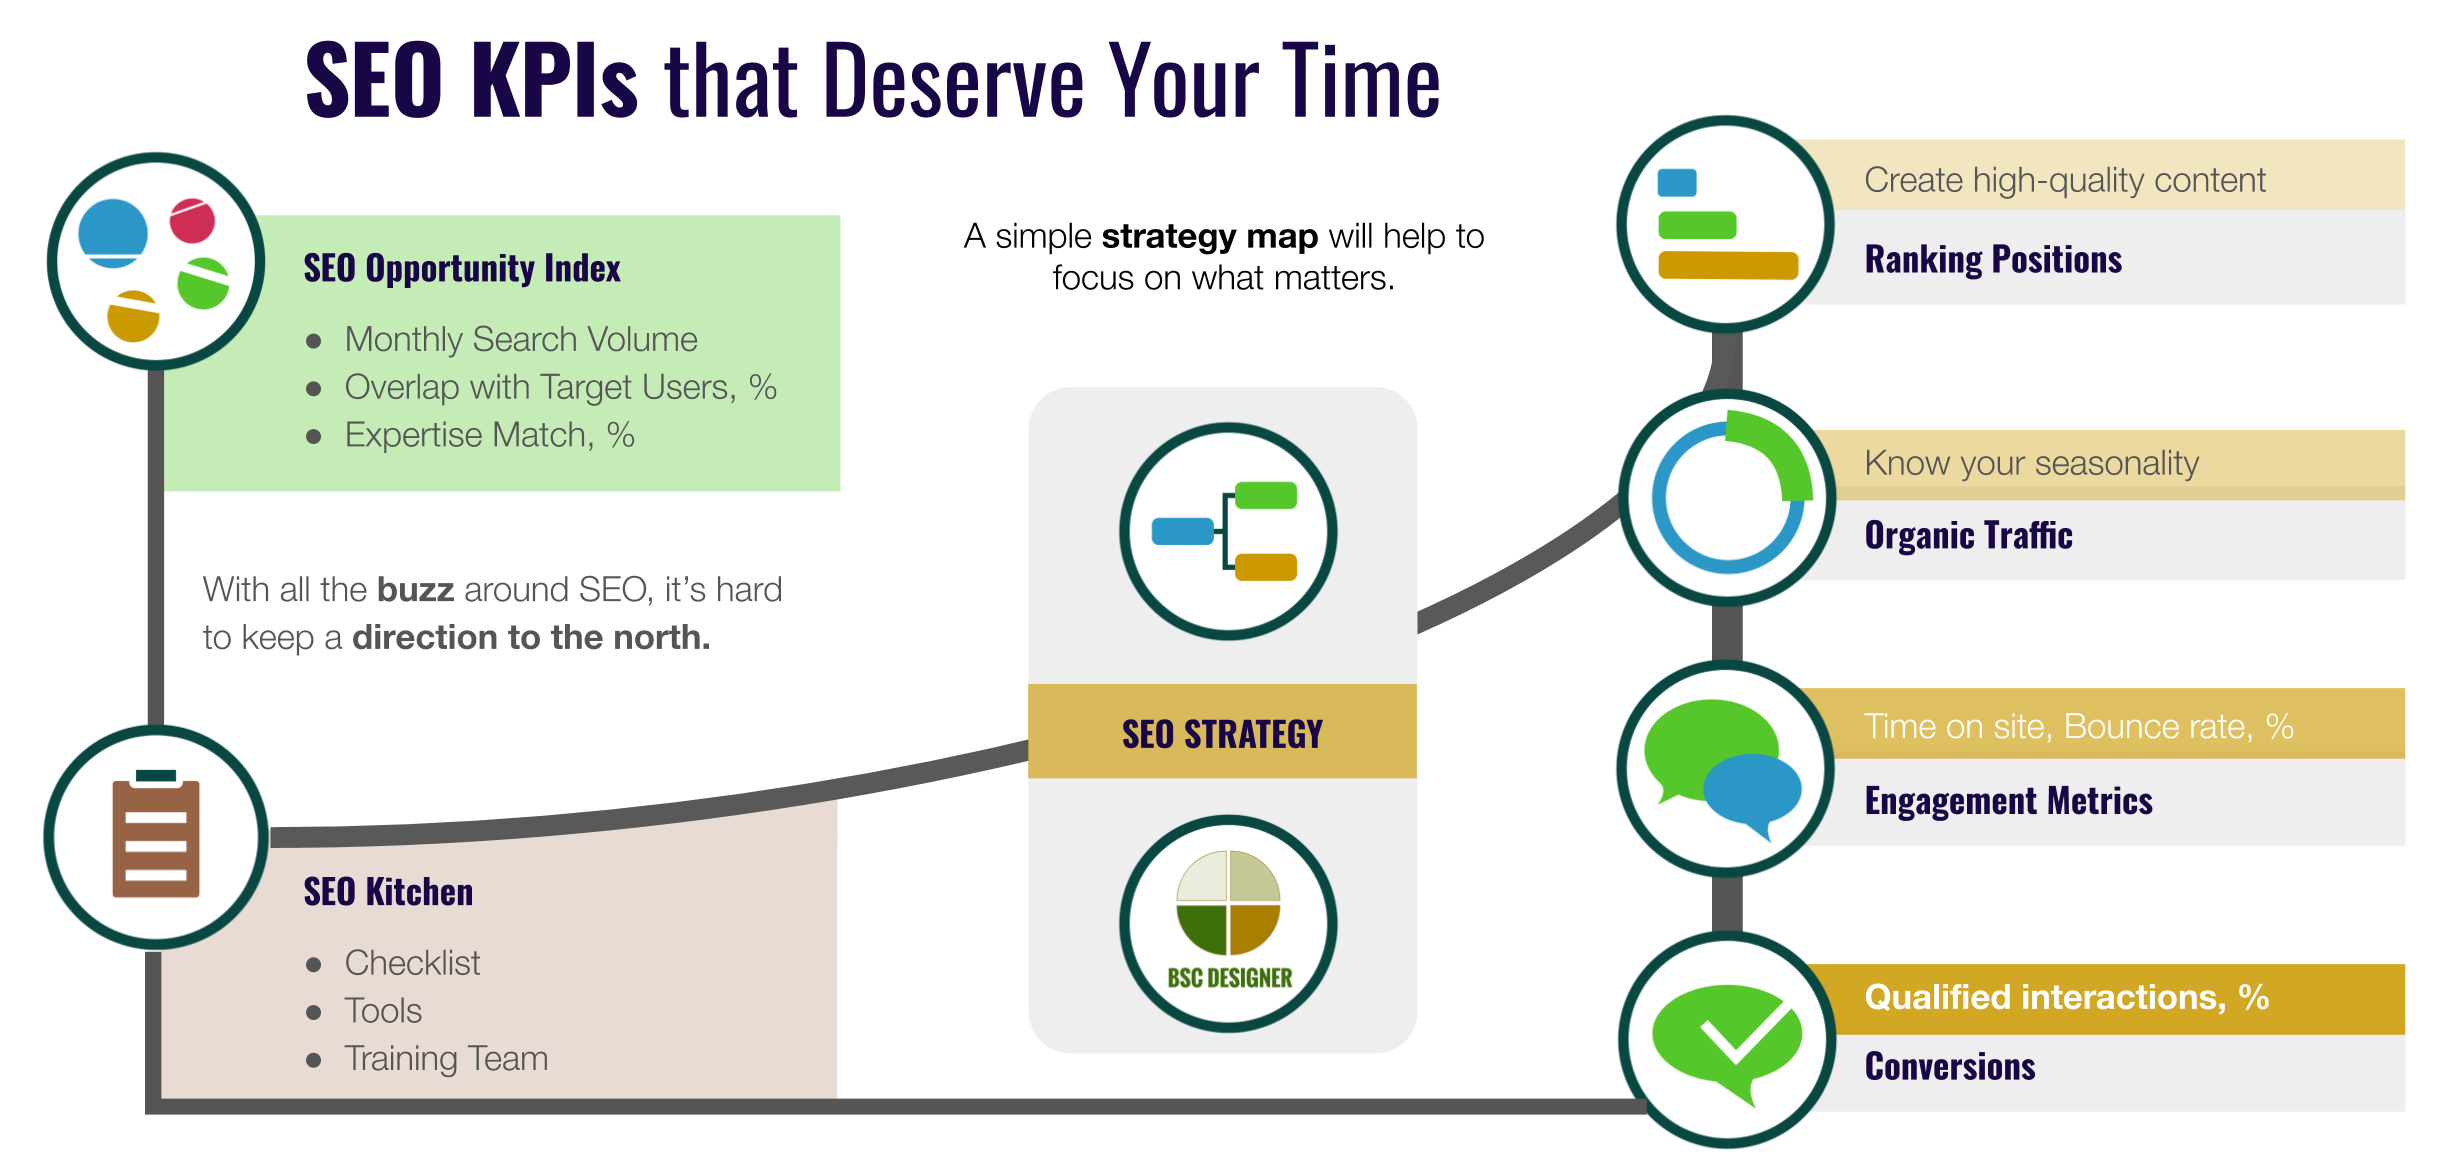 SEO KPIs That Deserve Your Time